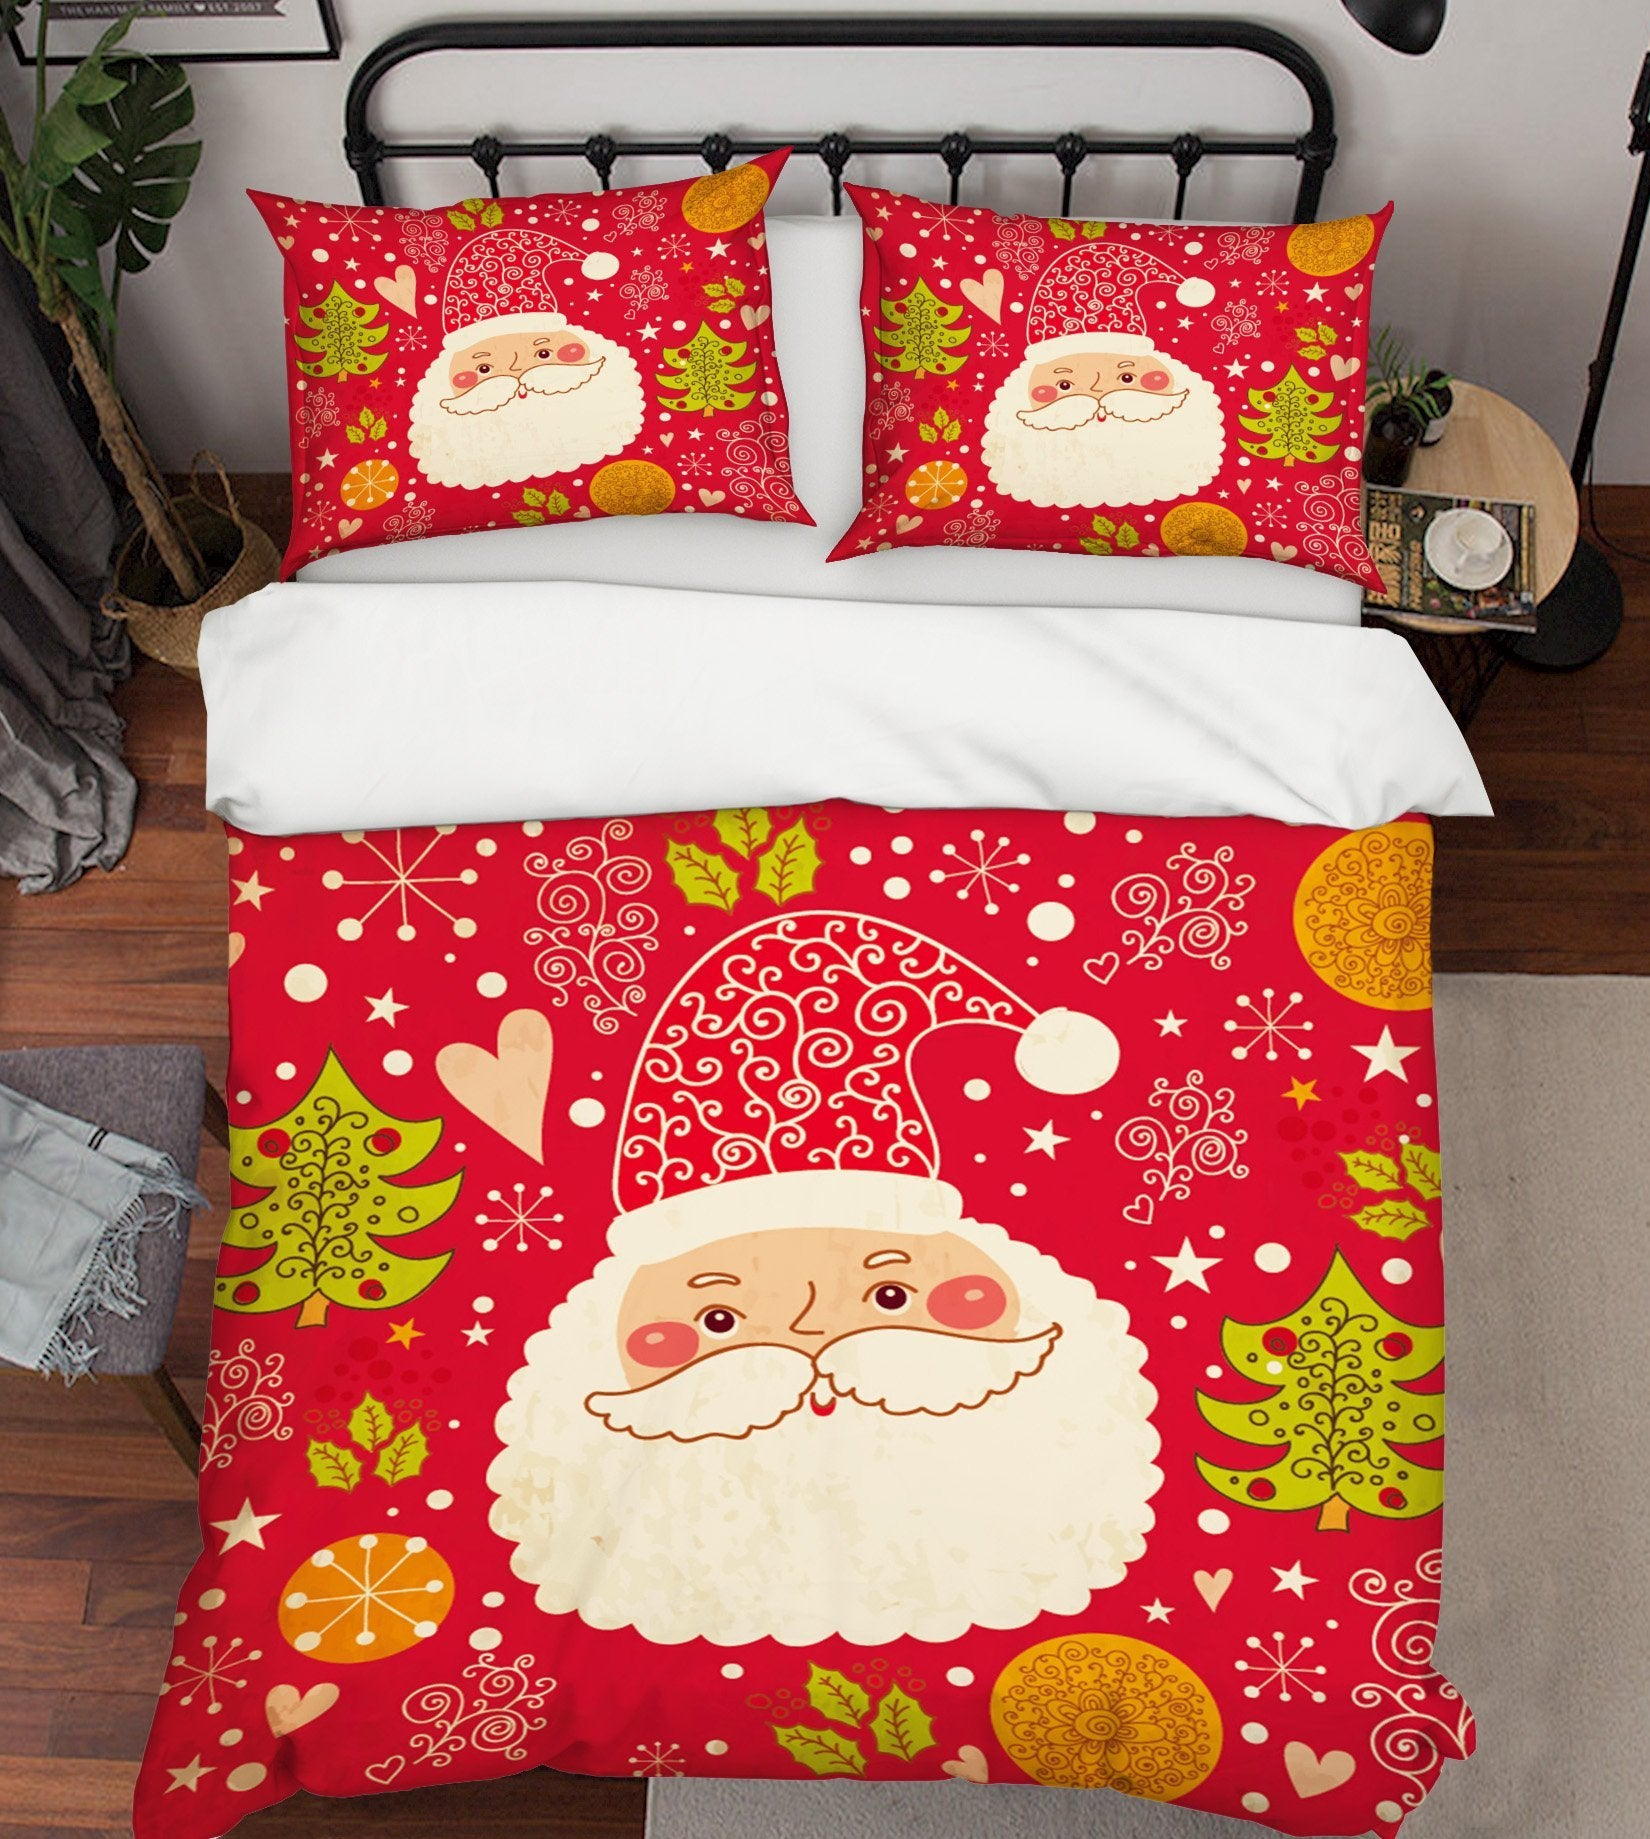 3D Christmas Happy Old Man 44 Bed Pillowcases Quilt Quiet Covers AJ Creativity Home